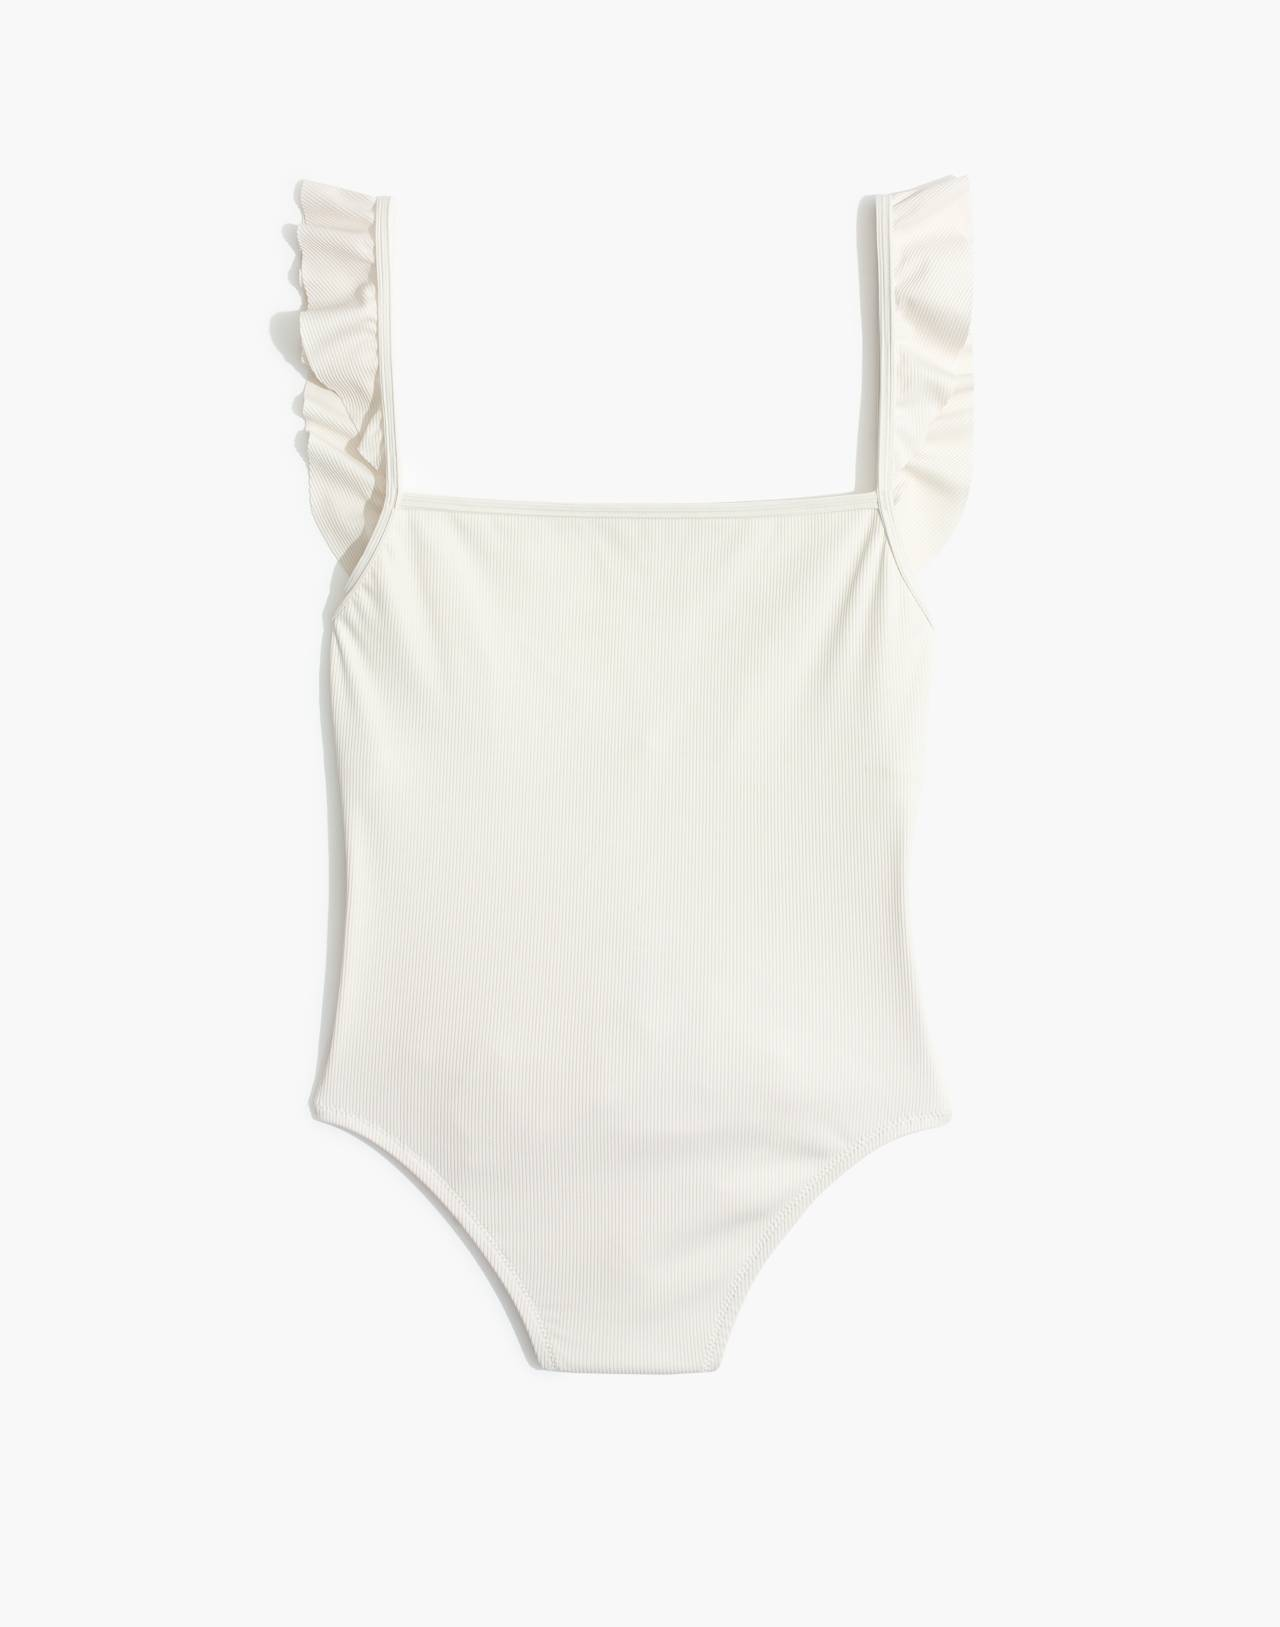 Madewell Second Wave Ribbed Ruffle-Strap One-Piece Swimsuit in pearl ivory image 4